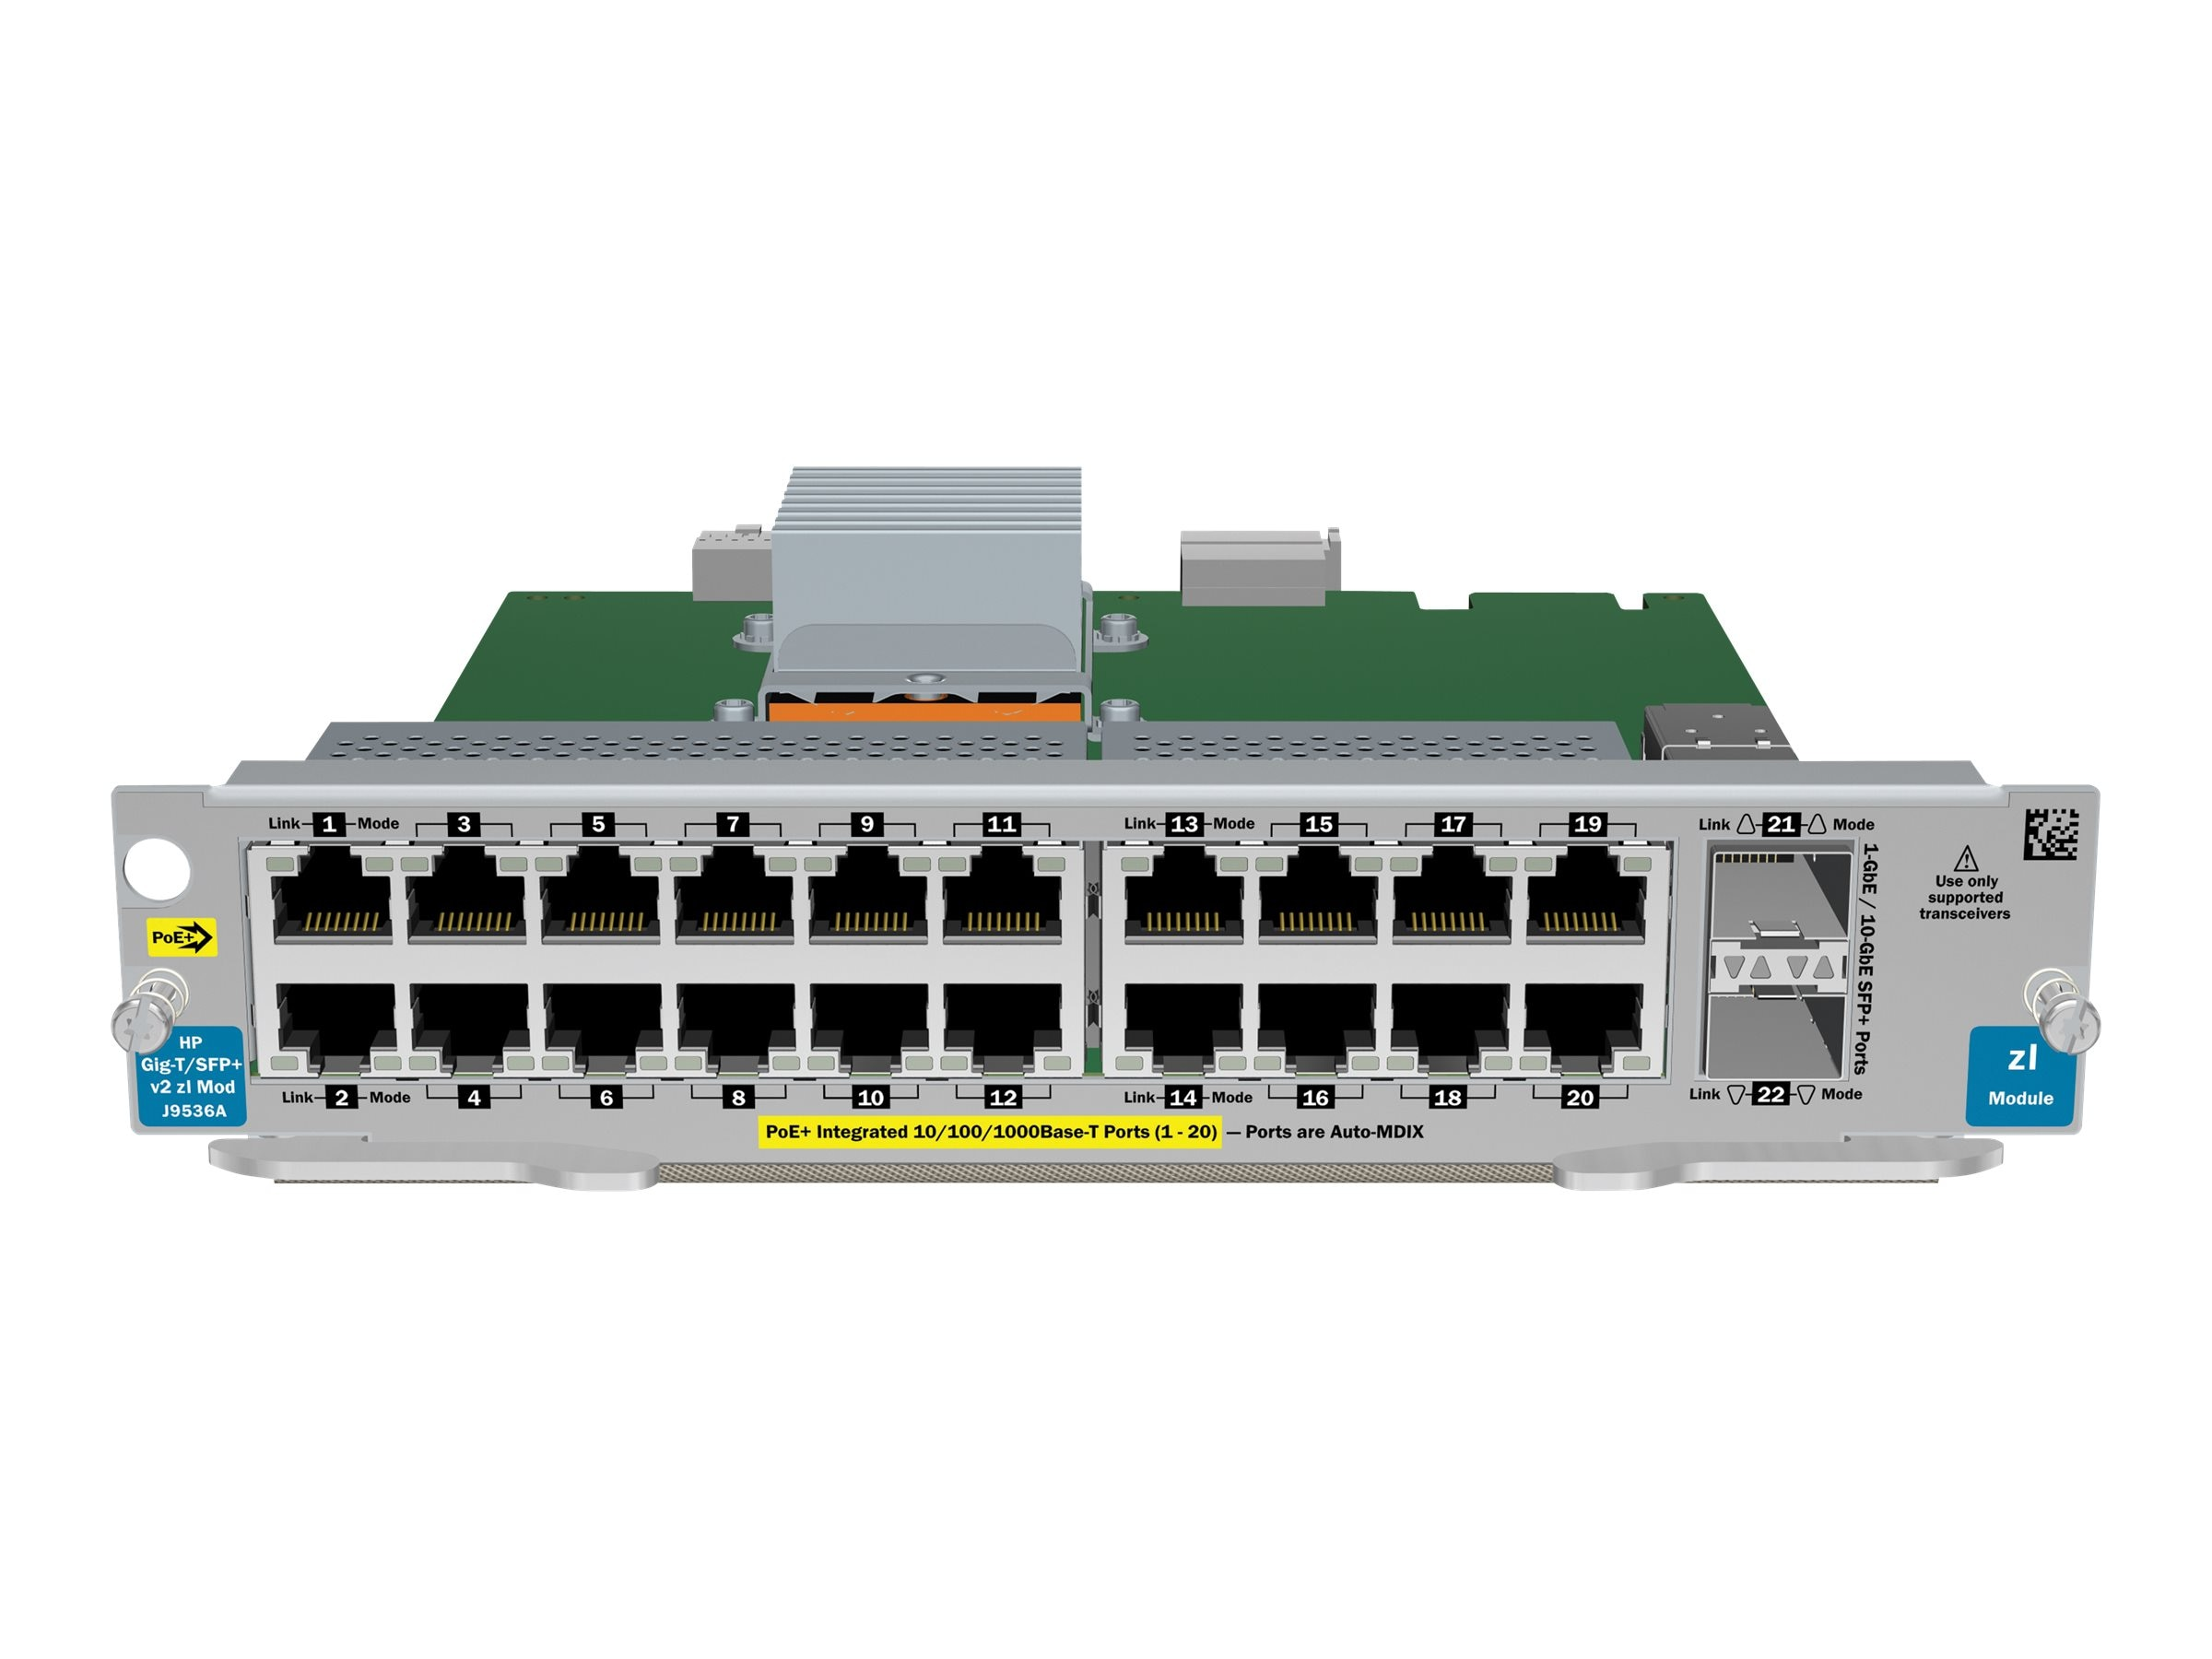 HPE 20Pt. GT PoE+ 2Pt. SFP+-V2 ZL Module, J9536A, 12229961, Network Device Modules & Accessories